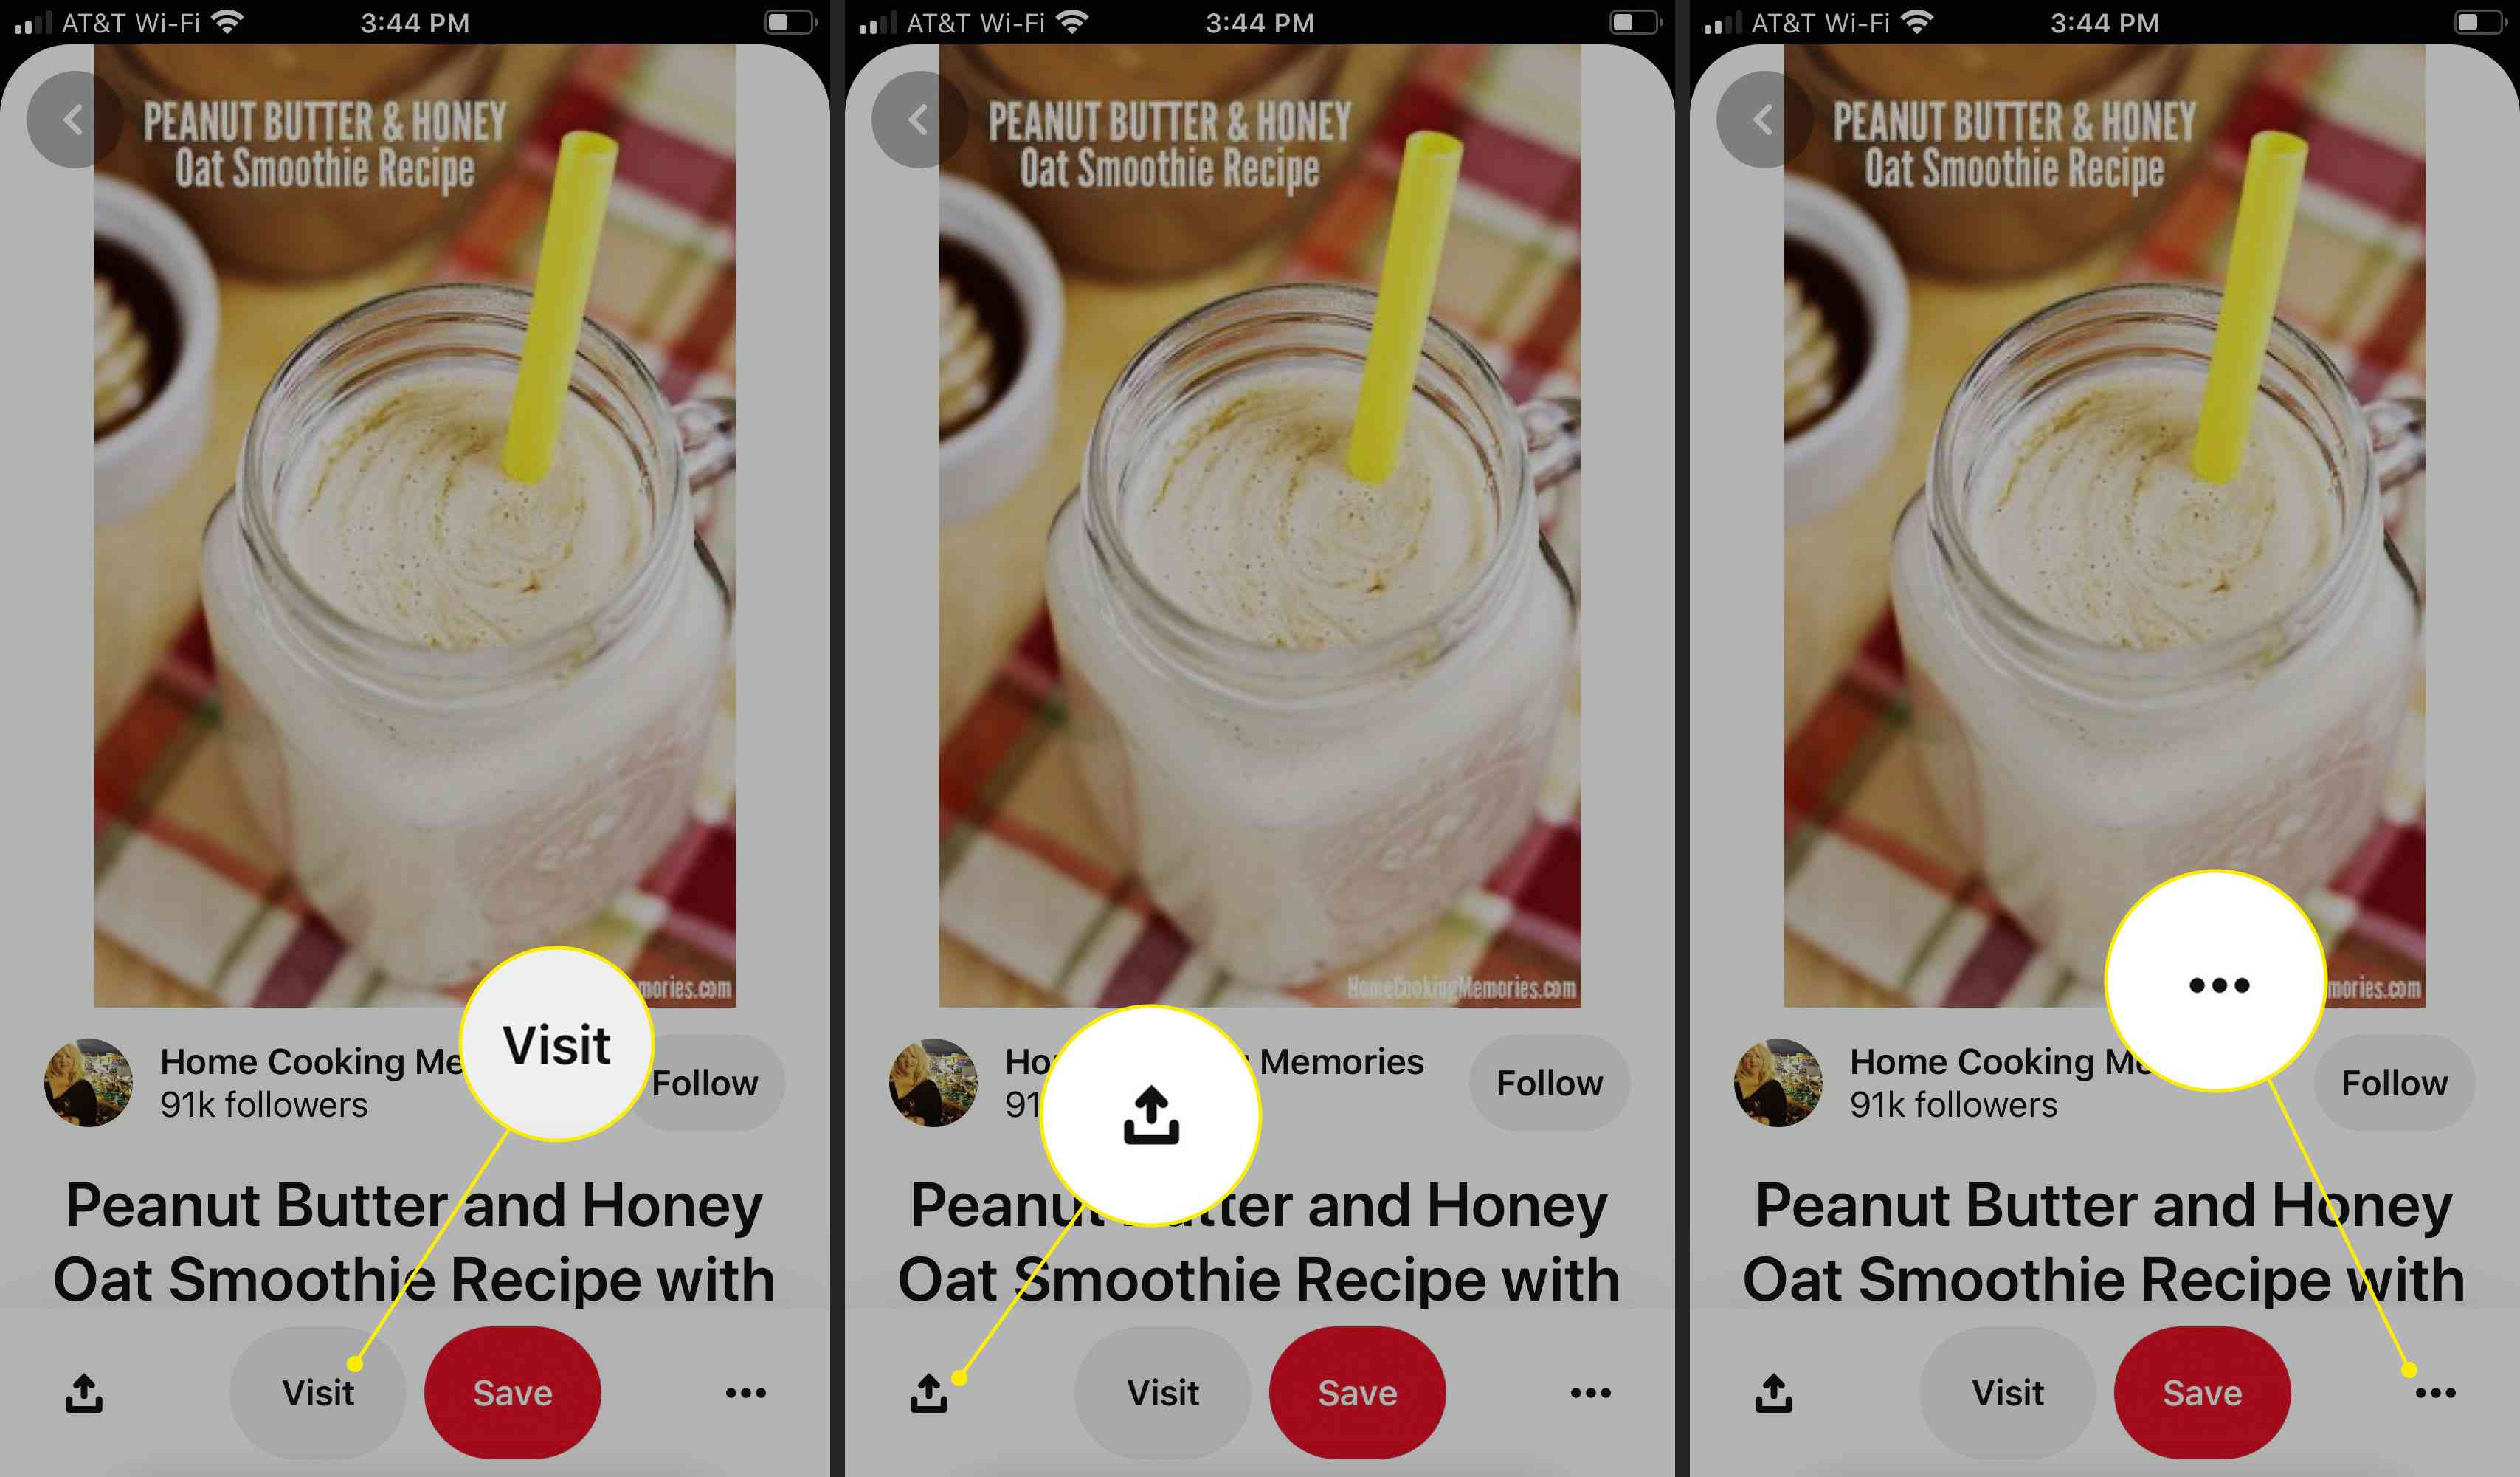 The Visit, Share, and More menus for a pin on Pinterest